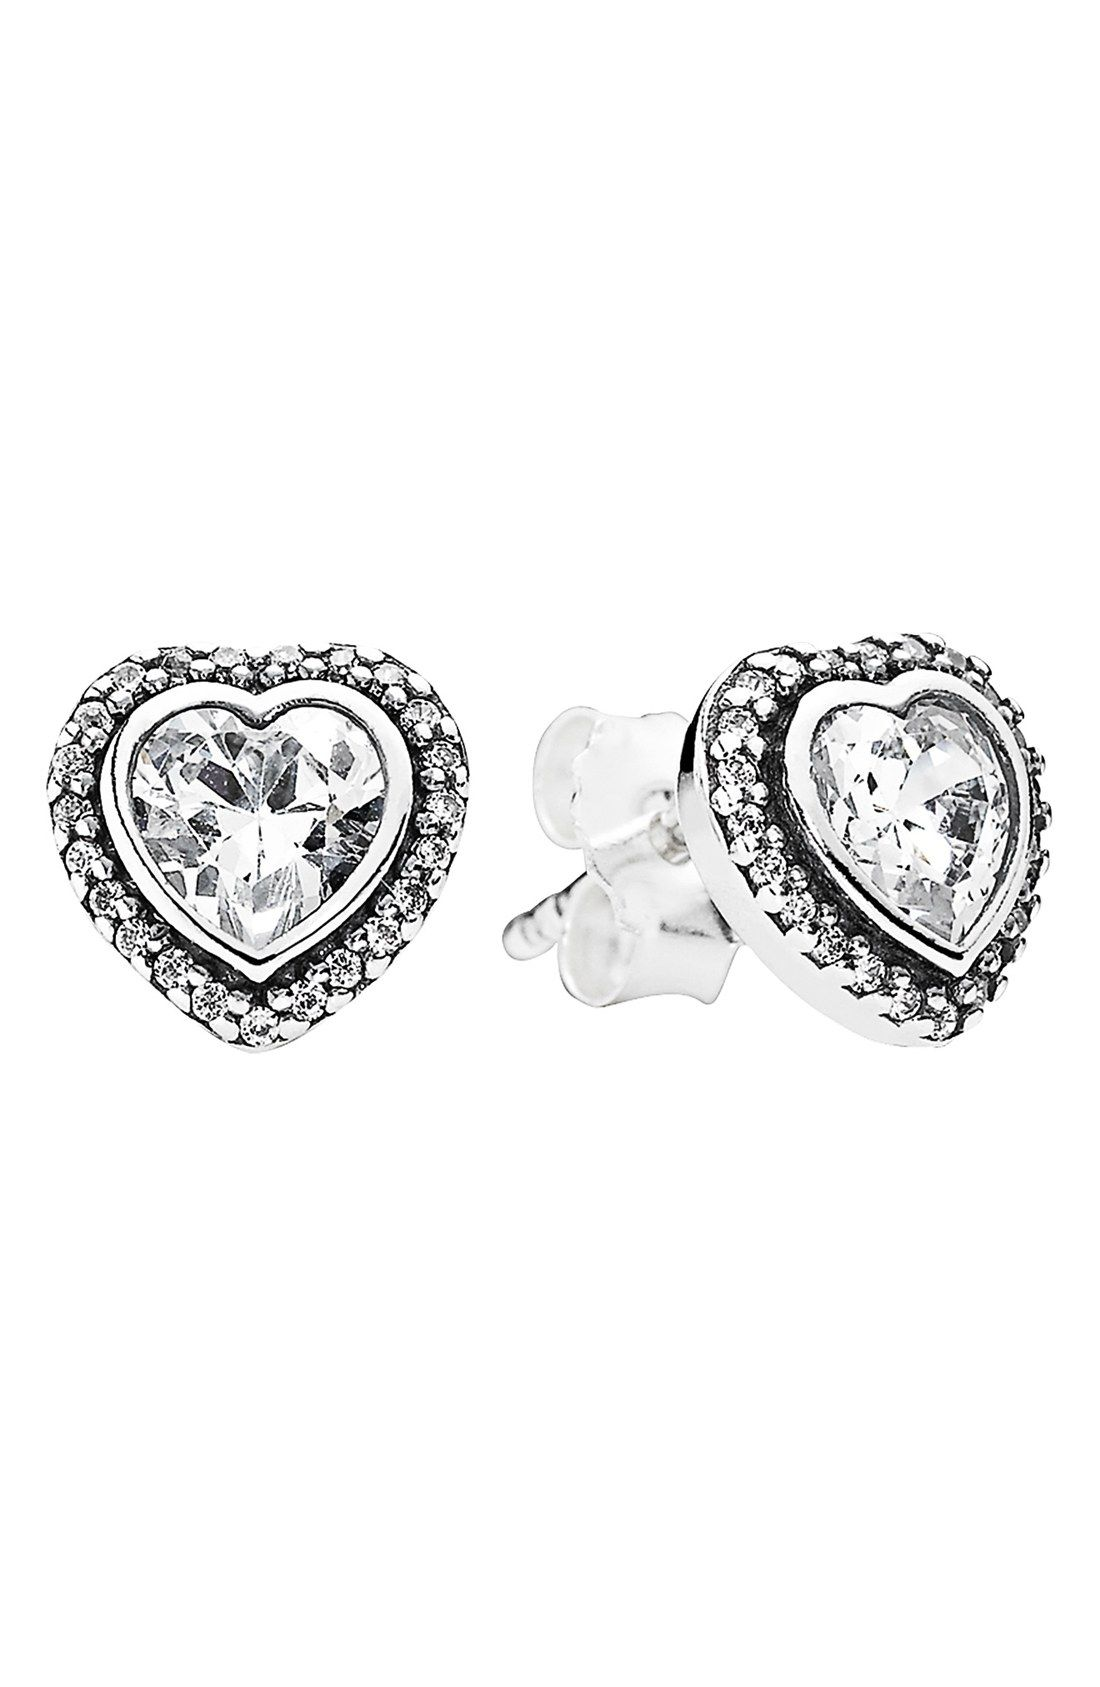 Pandora Sparkling Love Heart Stud Earrings